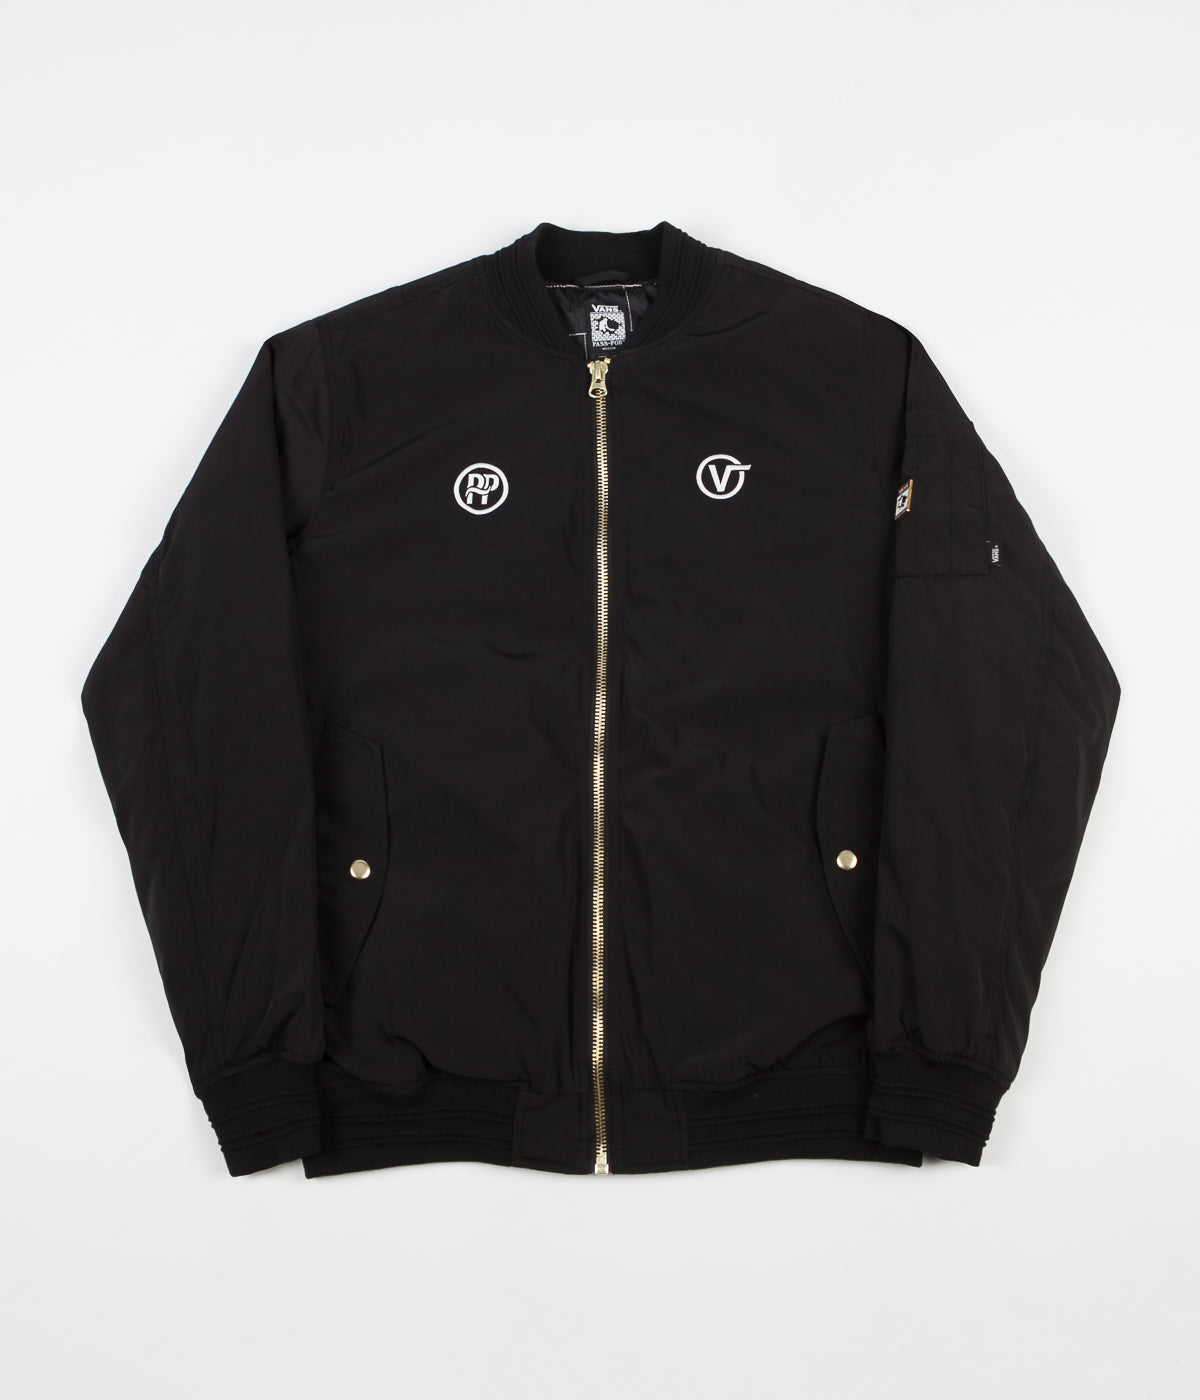 Vans x Pass Port Jacket - Black